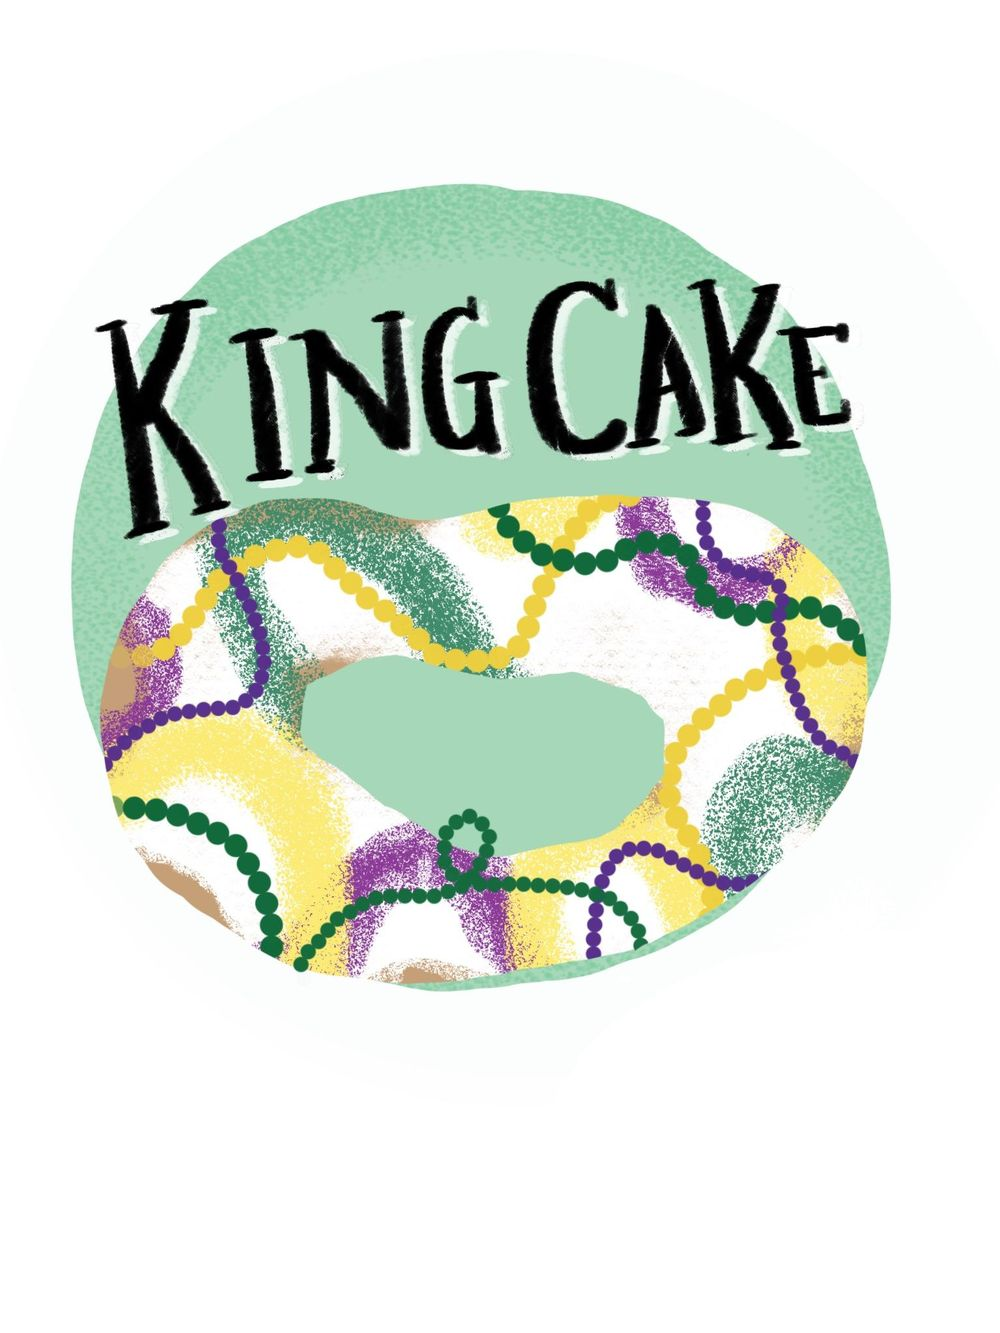 King Cake! - image 1 - student project